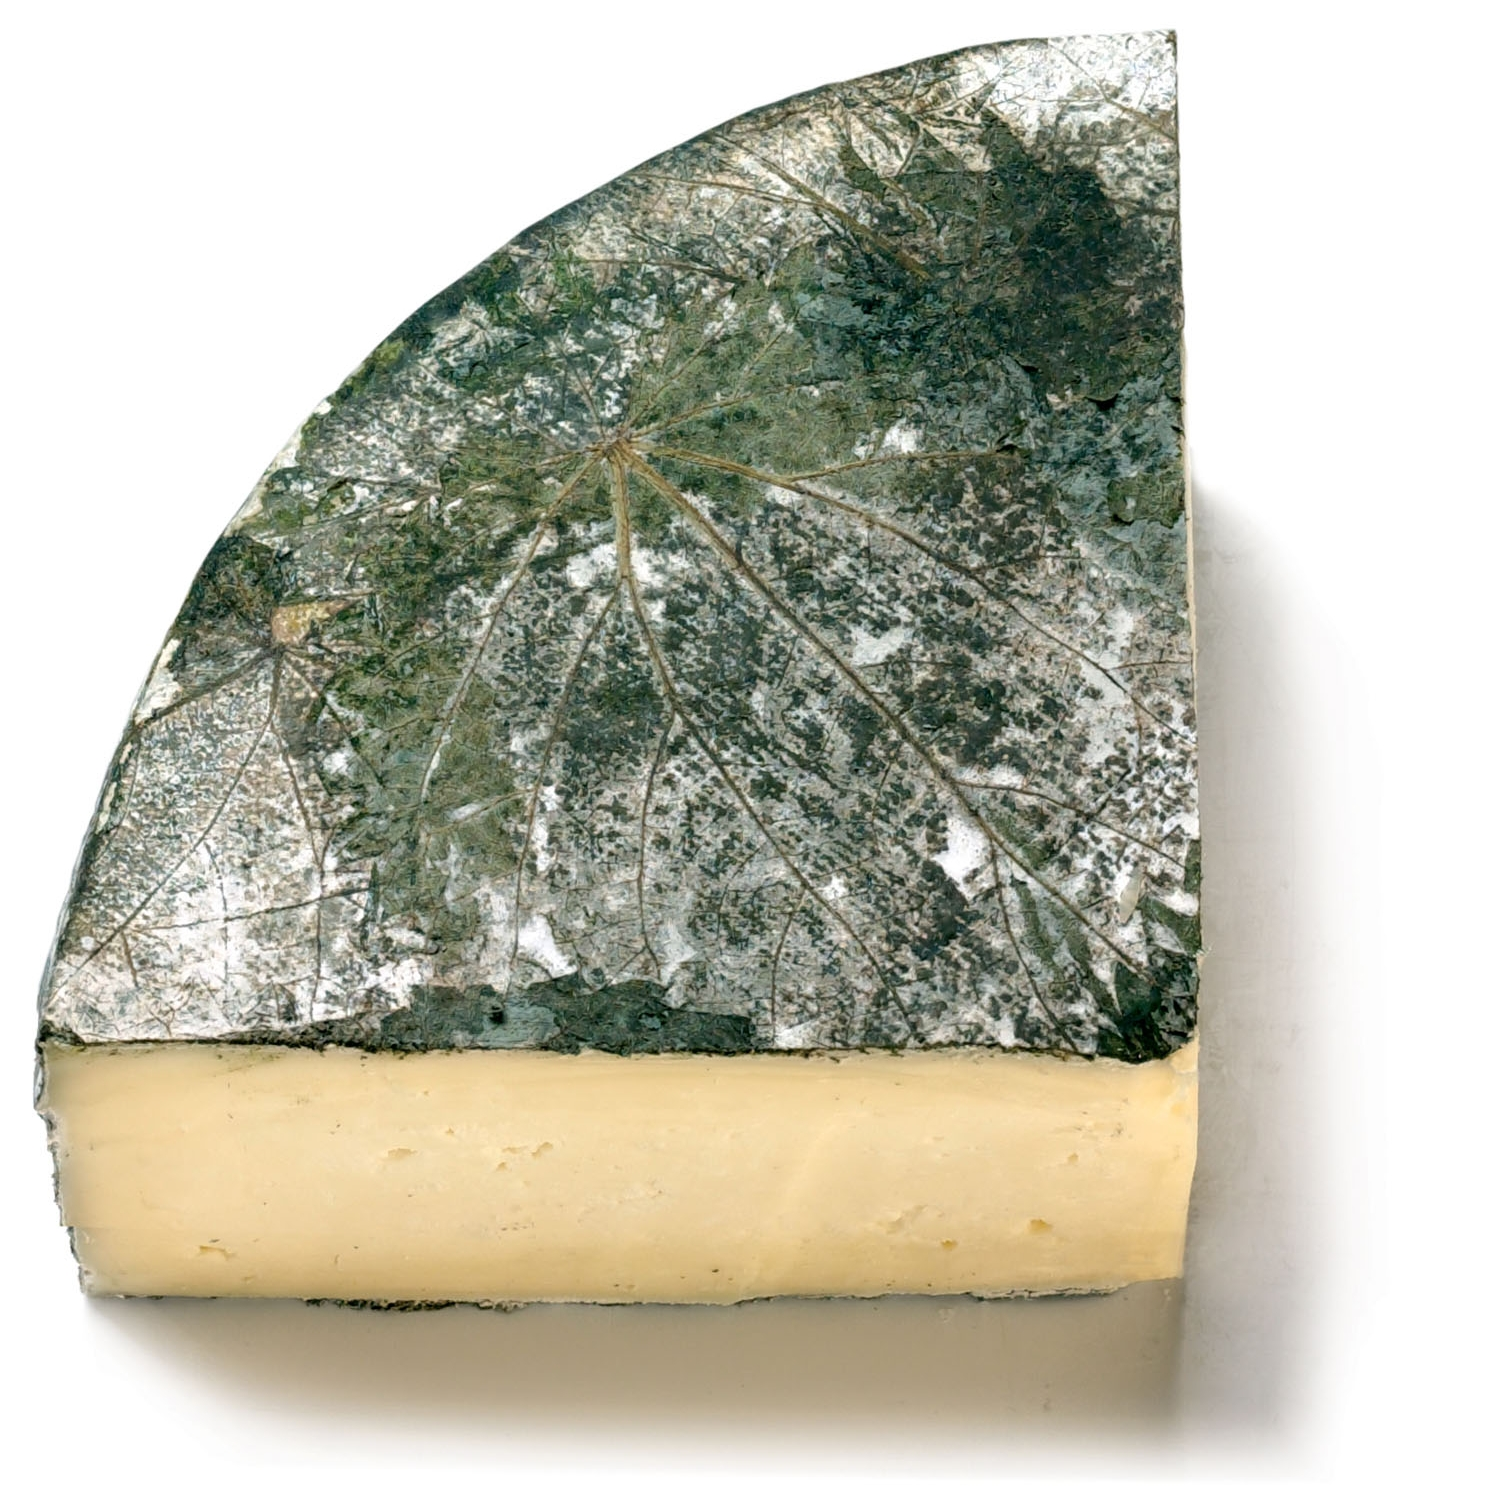 Cornish Yarg (with nettles)